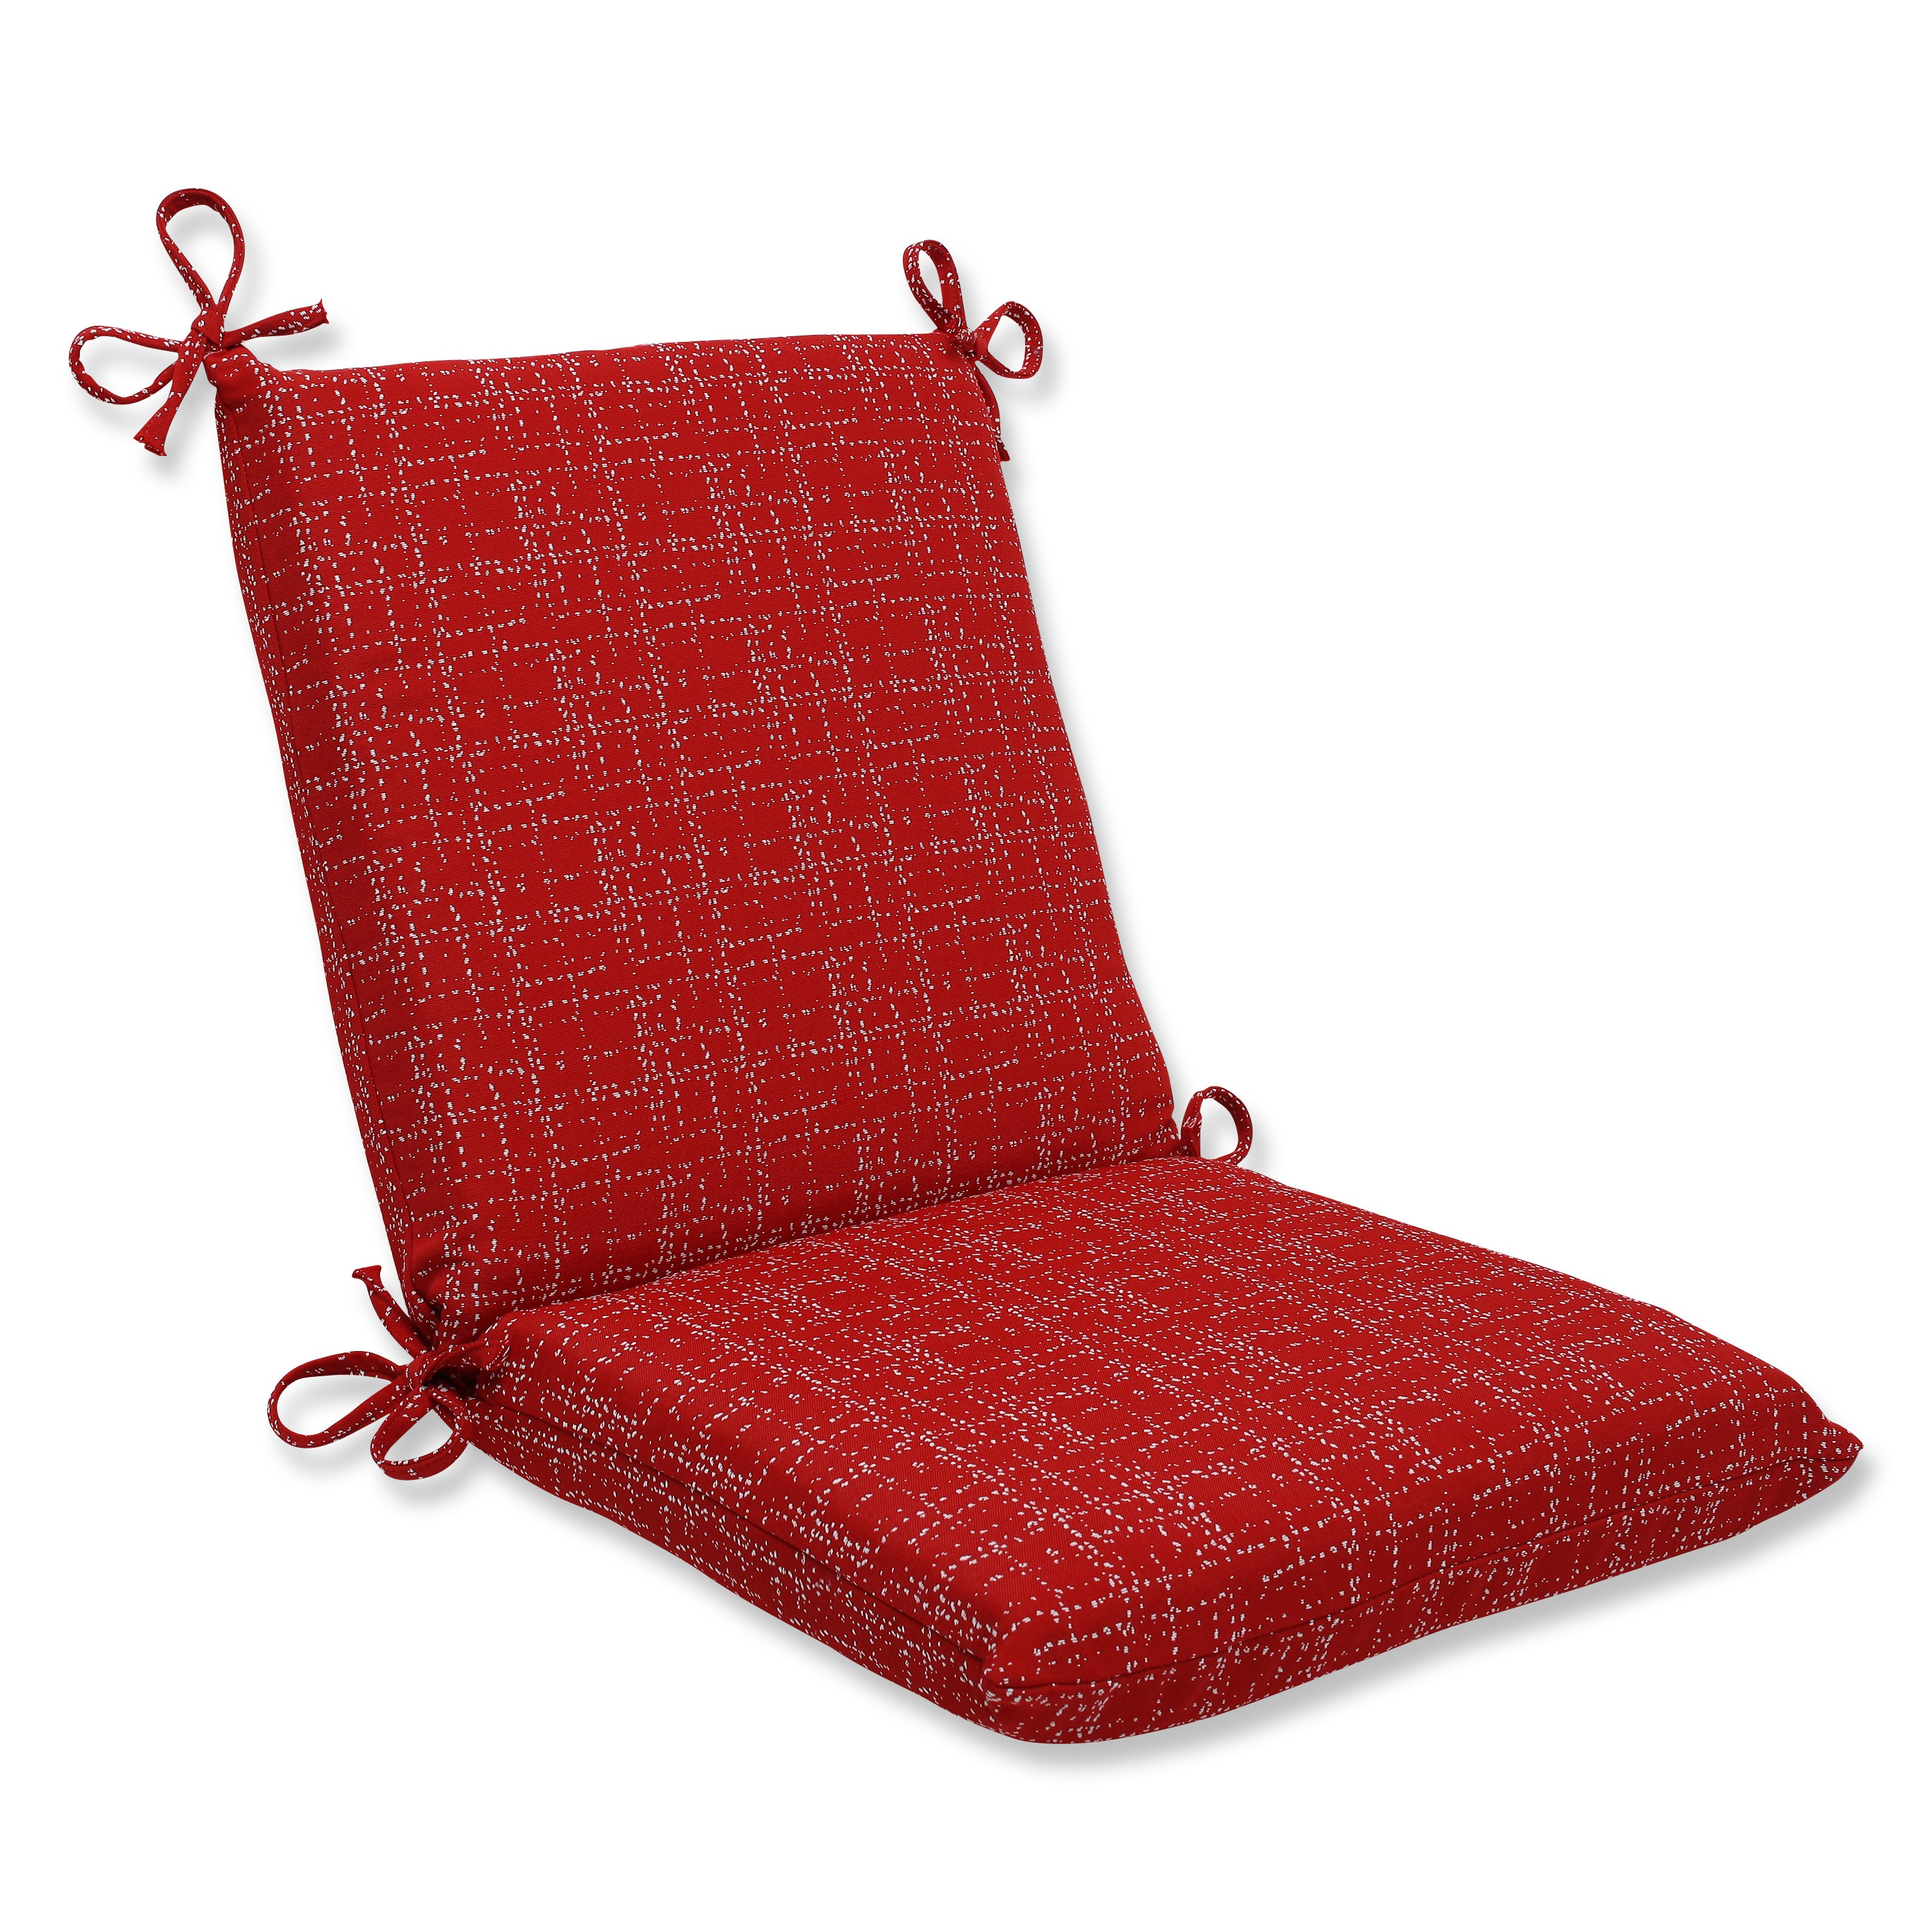 """CC Outdoor Living 36.5"""" Conran Red Dashed Lines Patio ... on Cc Outdoor Living id=27762"""